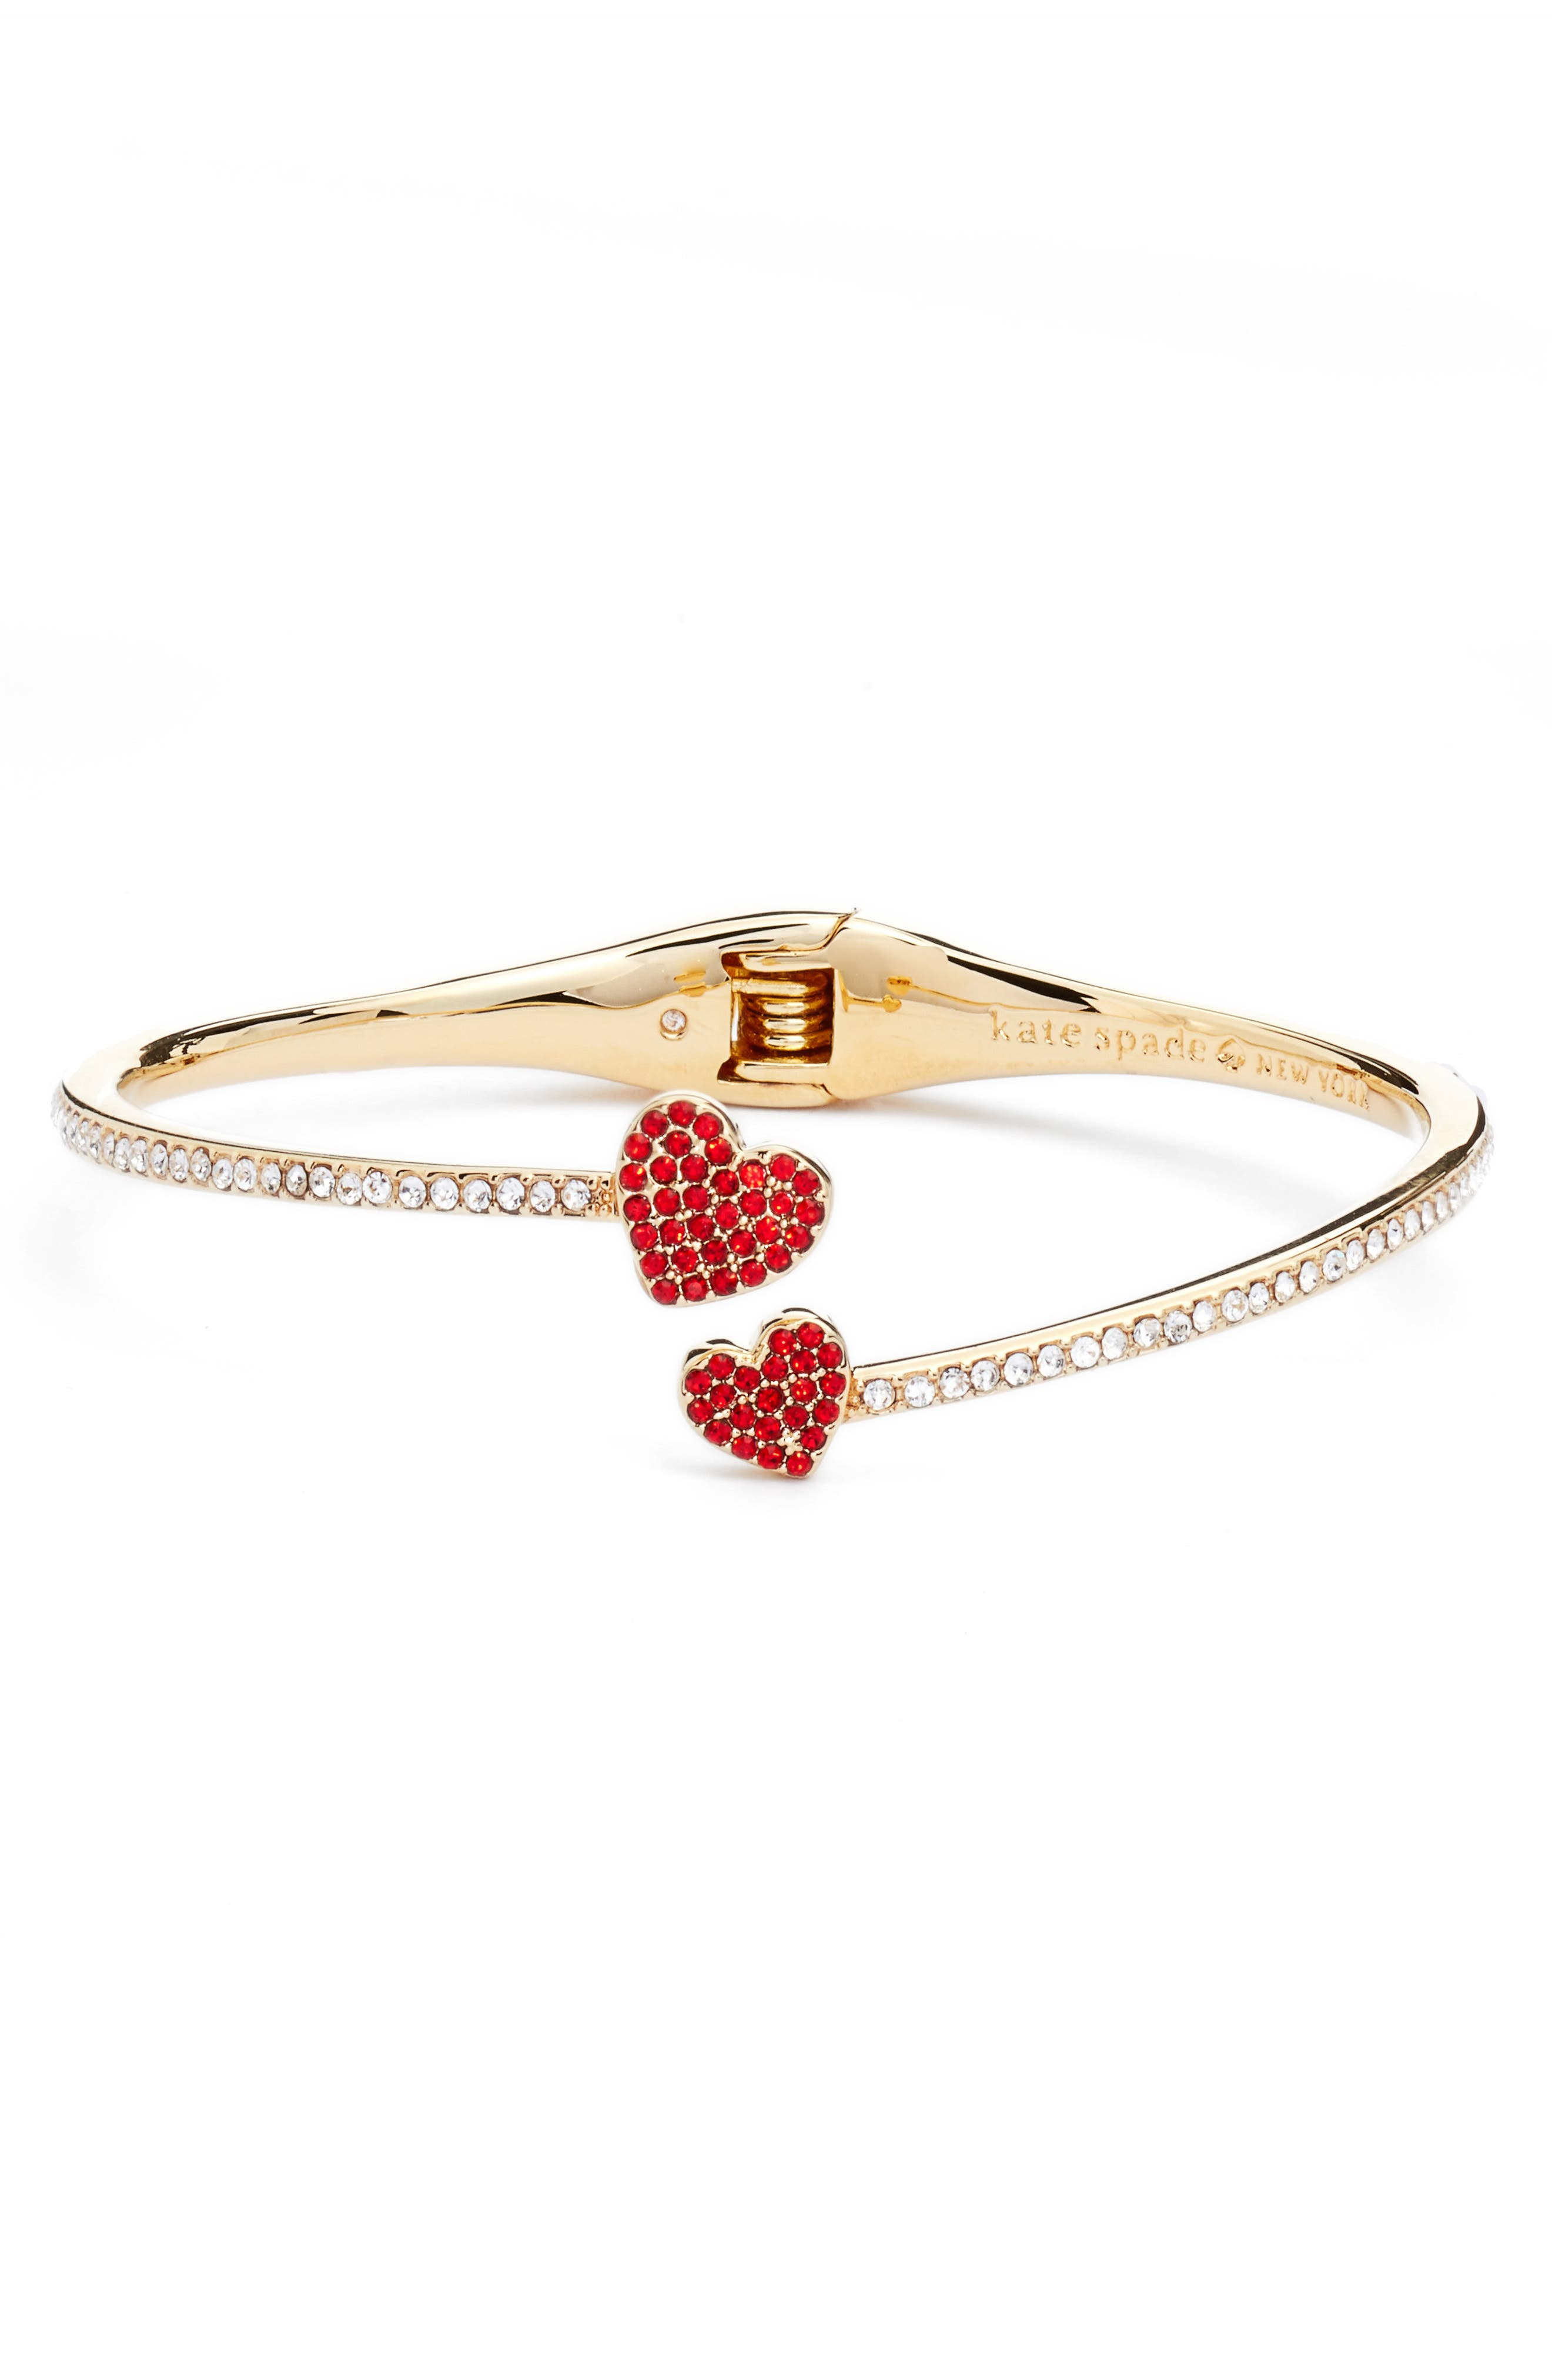 Main Image - kate spade new york yours truly pavé crystal cuff